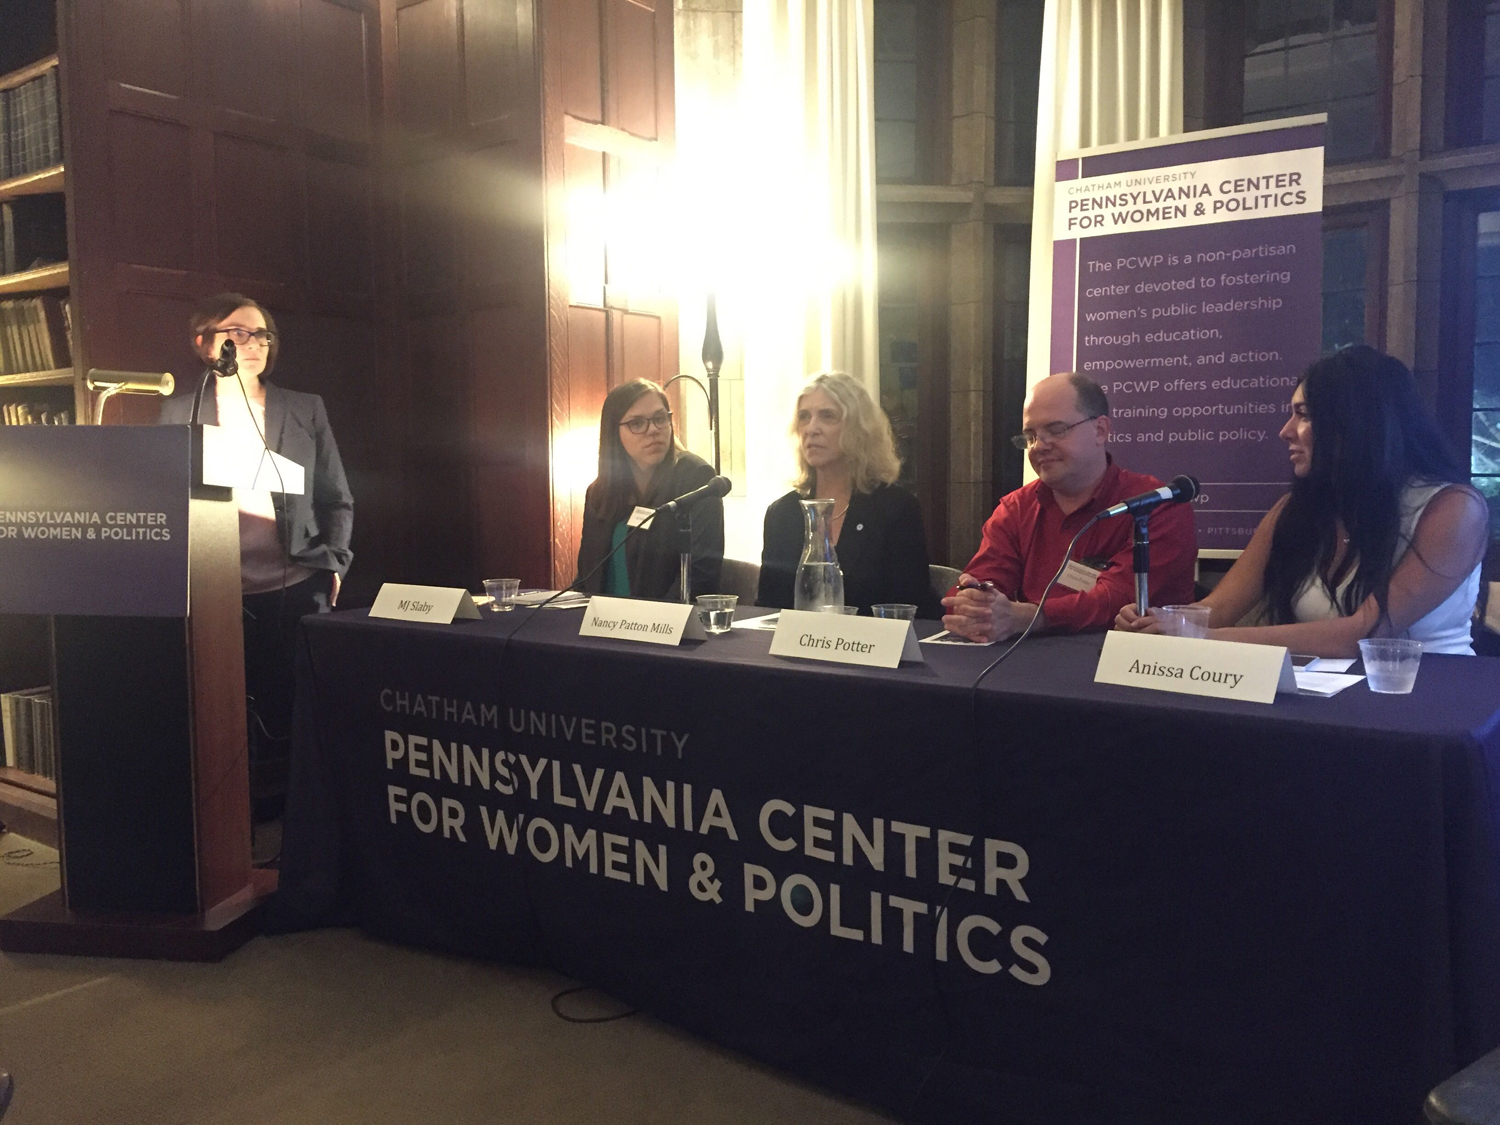 Pennsylvania Democratic chairwoman Dr. Nancy Patton Mills speaks at an election analysis panel hosted by Chatham University's Pennsylvania Center for Women and Politics.